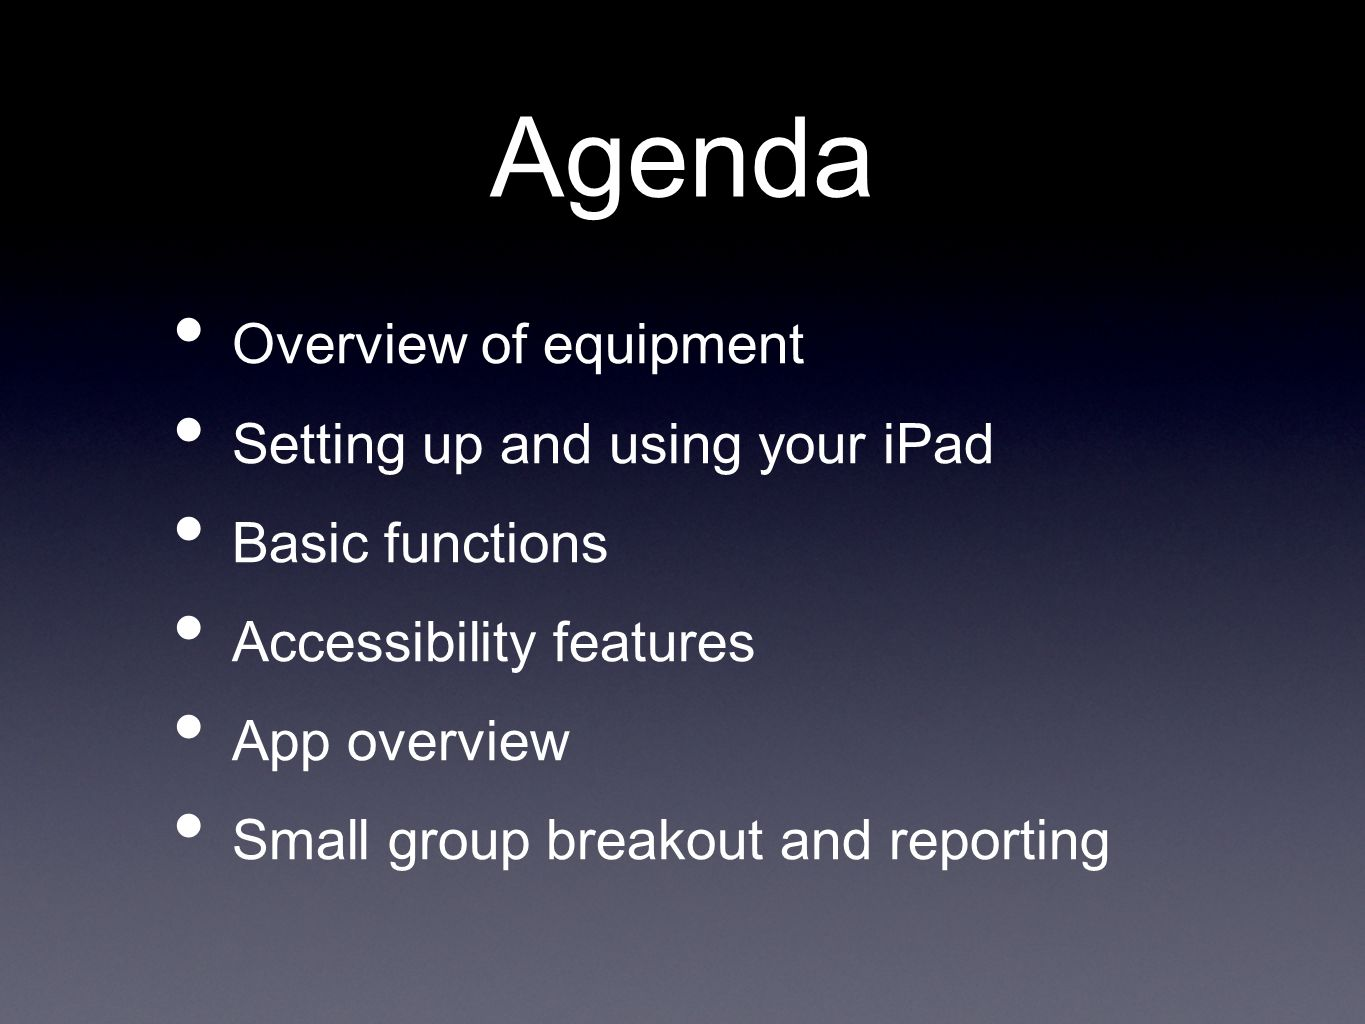 Agenda Overview of equipment Setting up and using your iPad Basic functions Accessibility features App overview Small group breakout and reporting